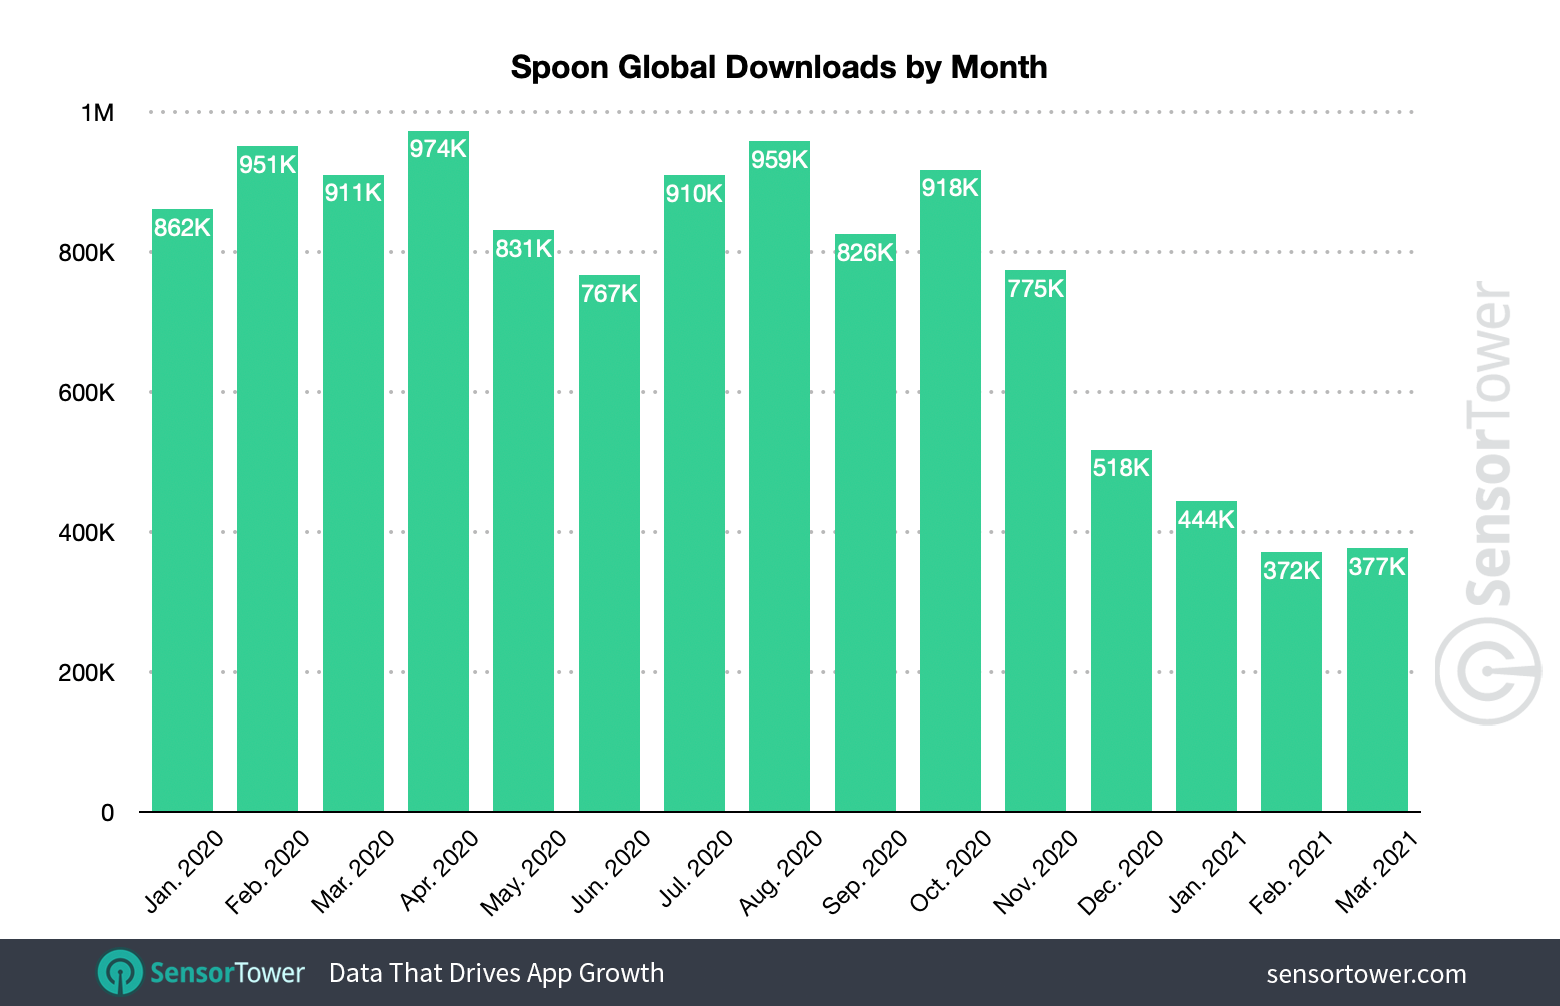 Spoon had its best month of installs in April 2020.